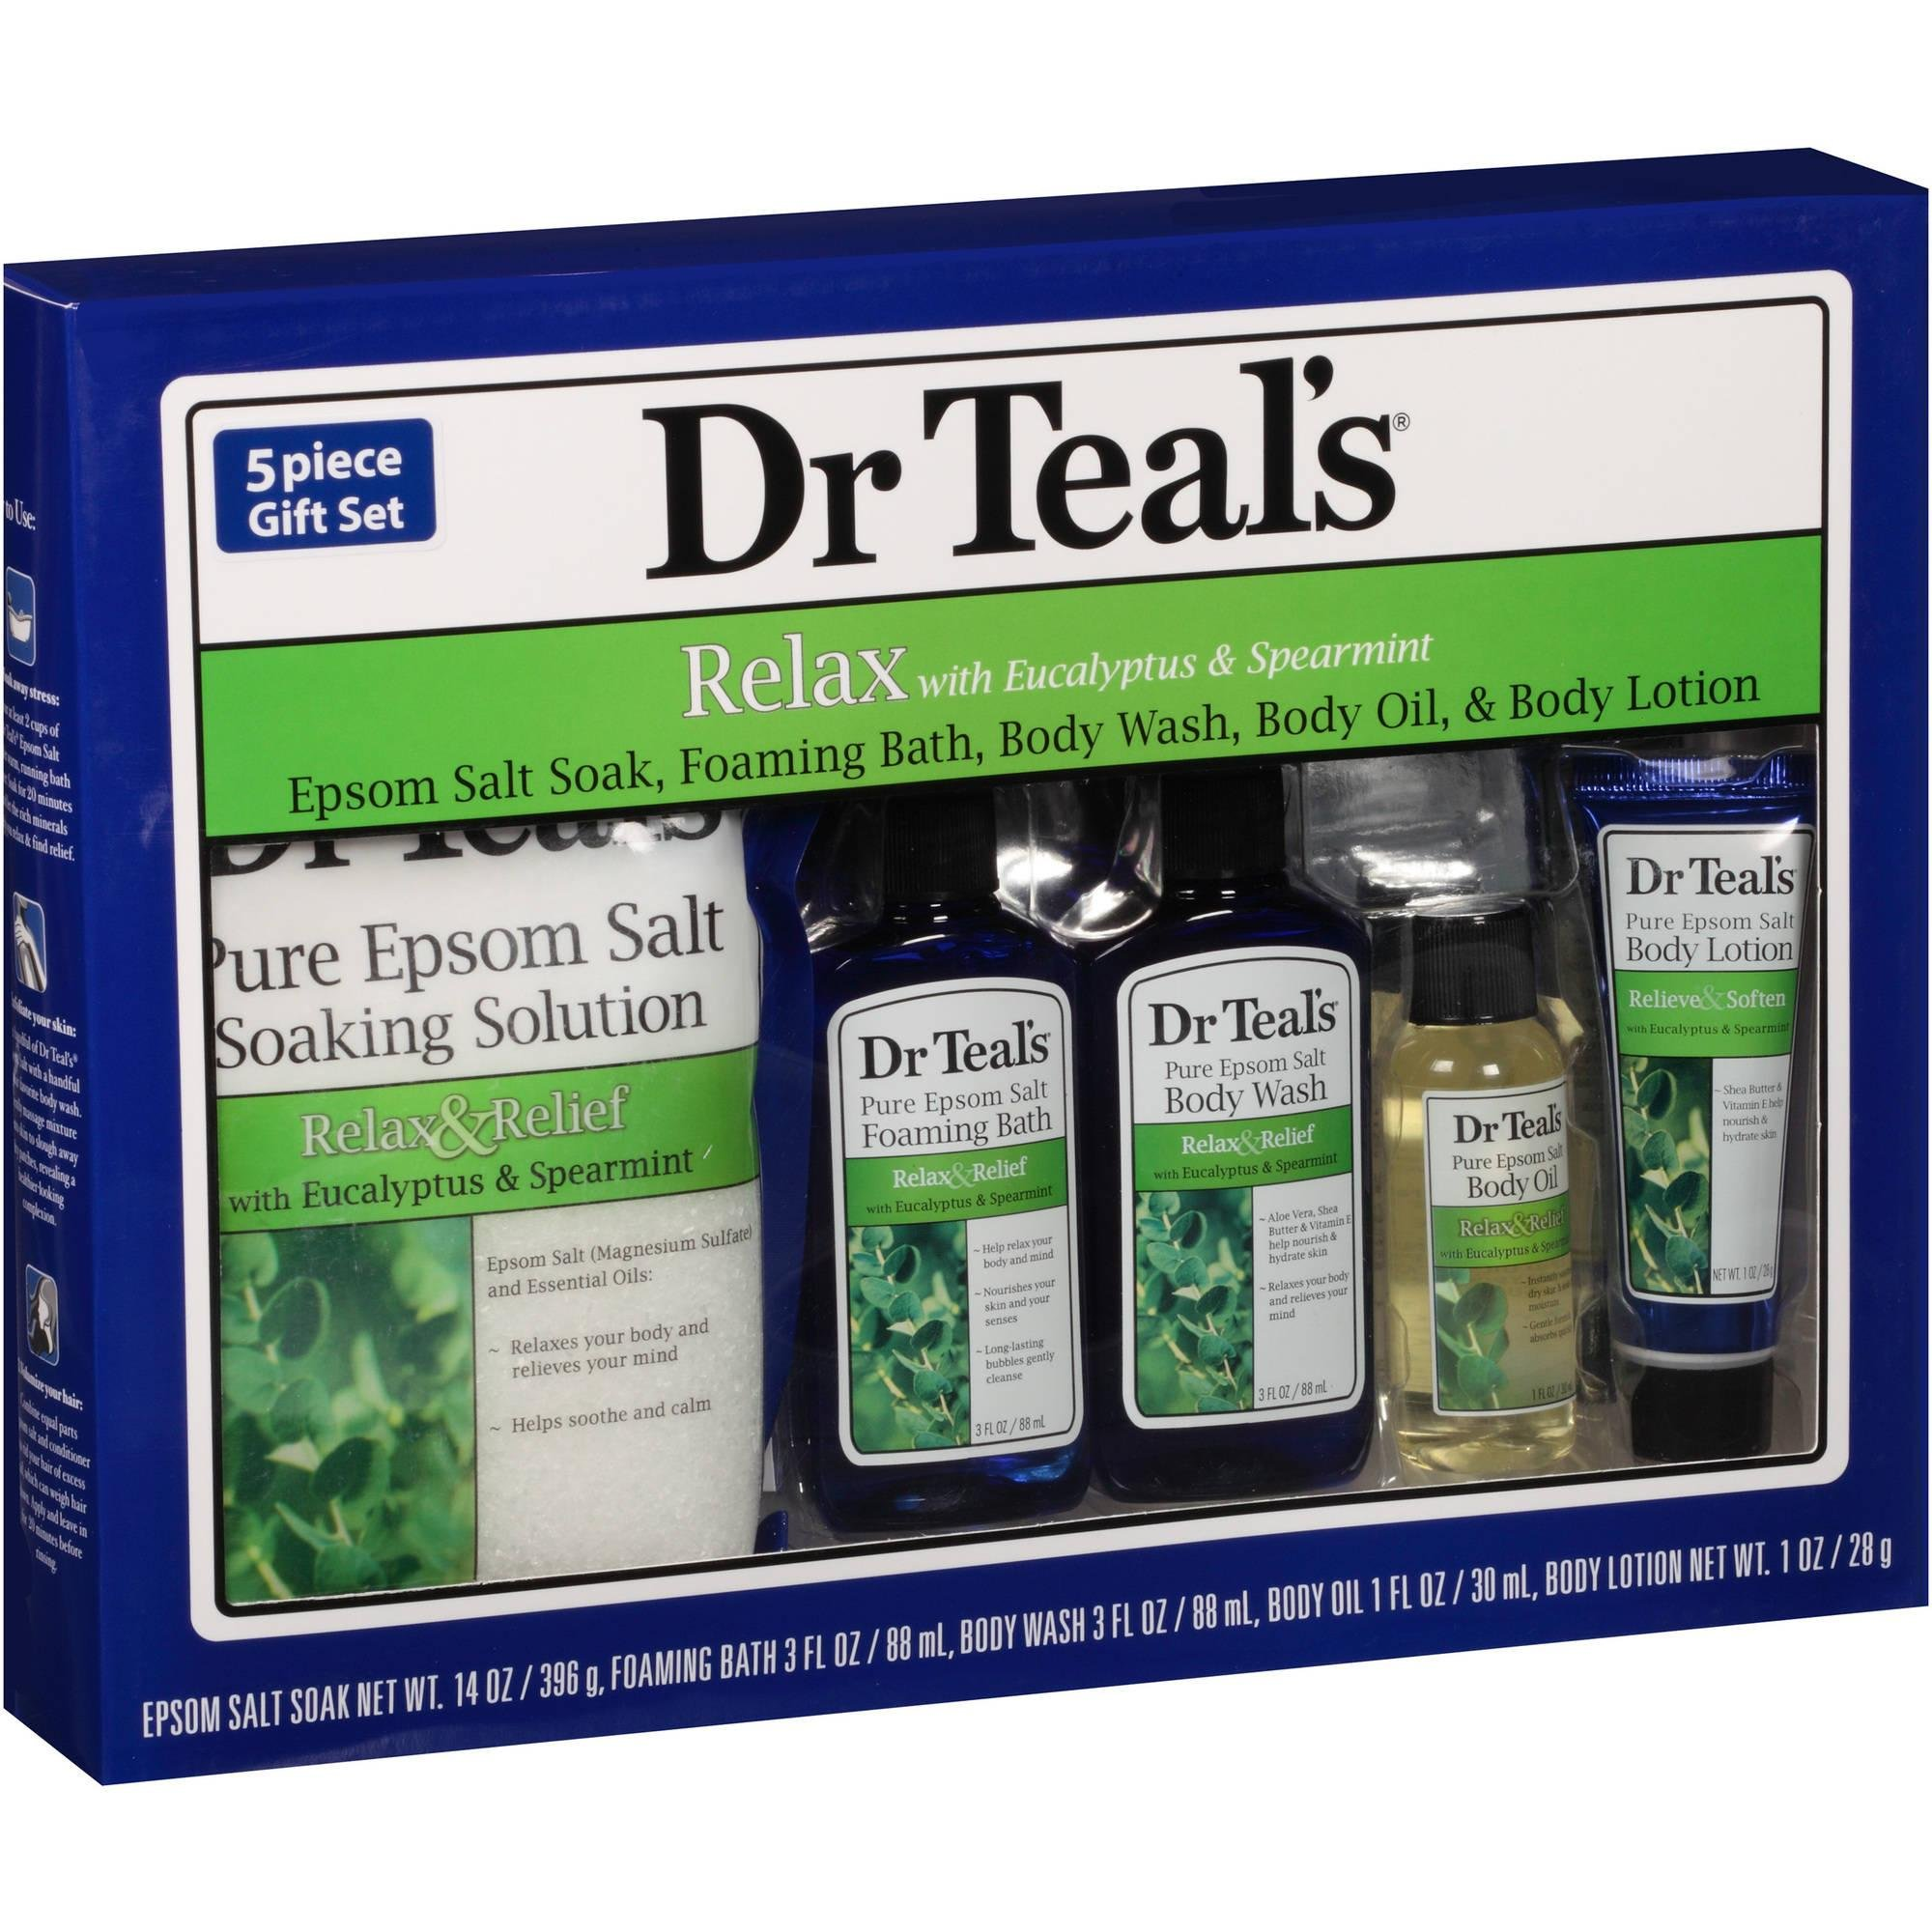 Dr Teal's Relax with Eucalyptus & Spearmint 5-Piece Bath Travel Gift Set